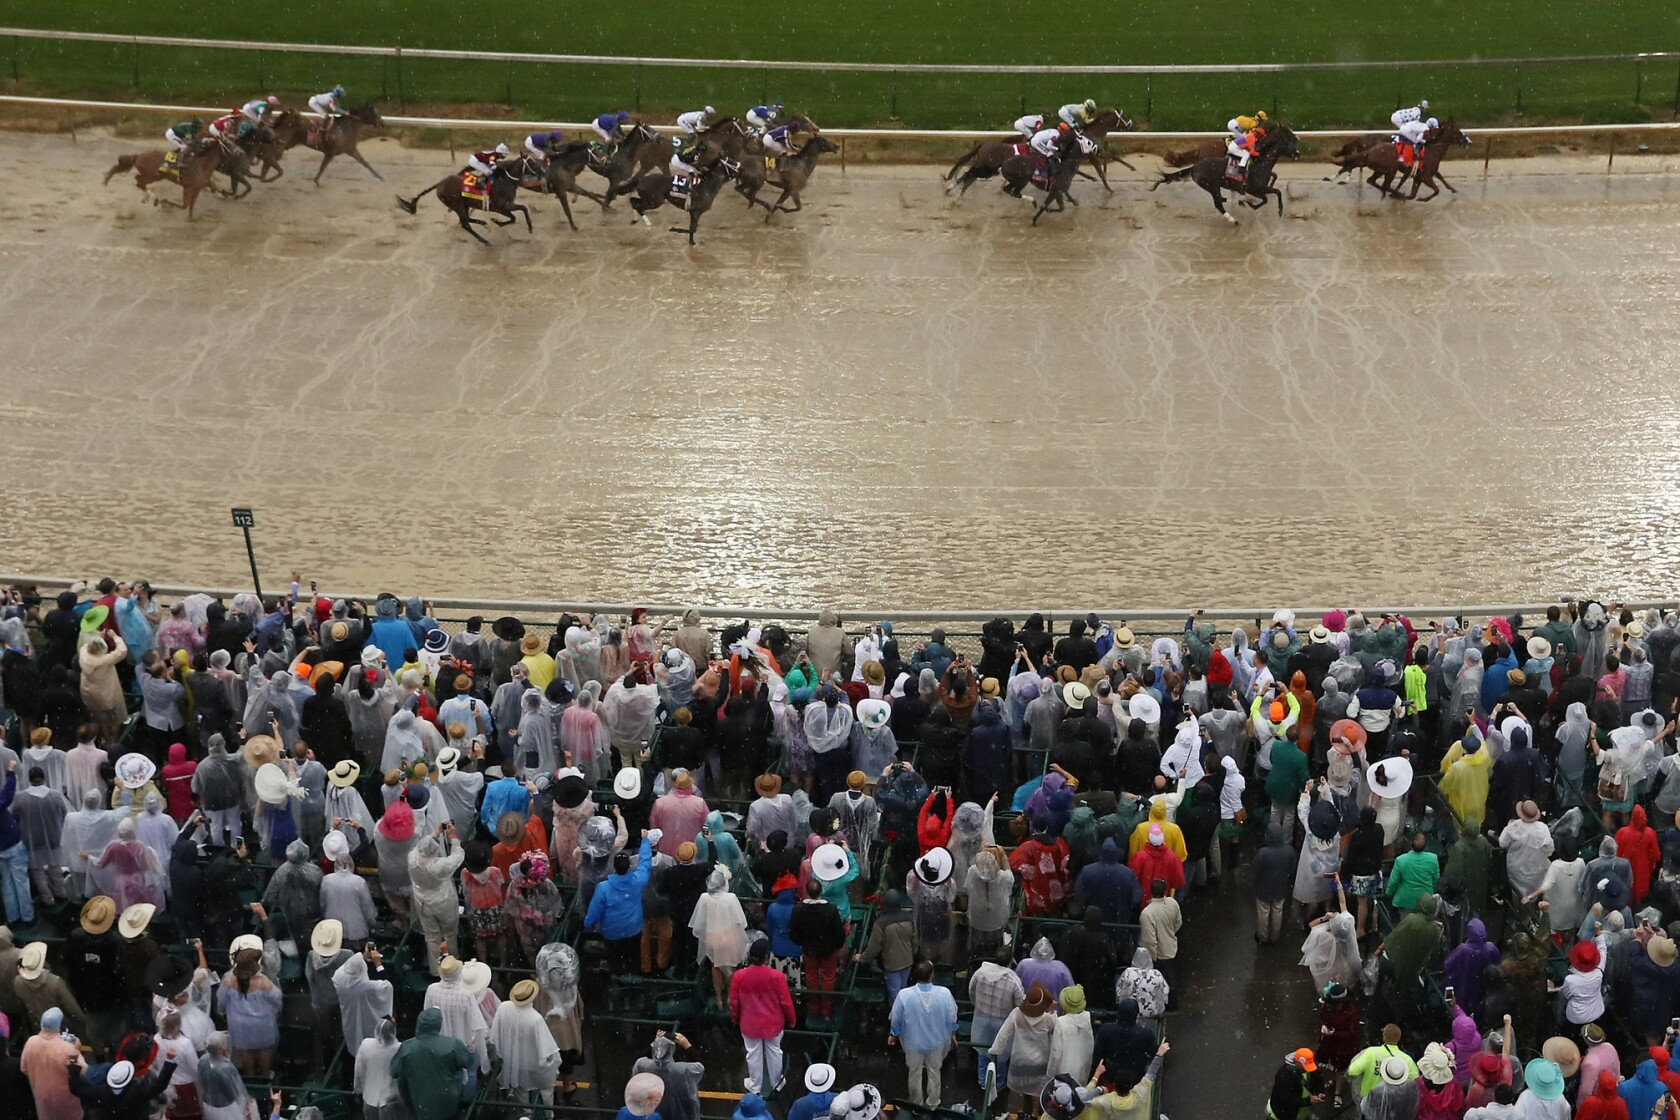 It's just a photo of Canny Printable Kentucky Derby Field